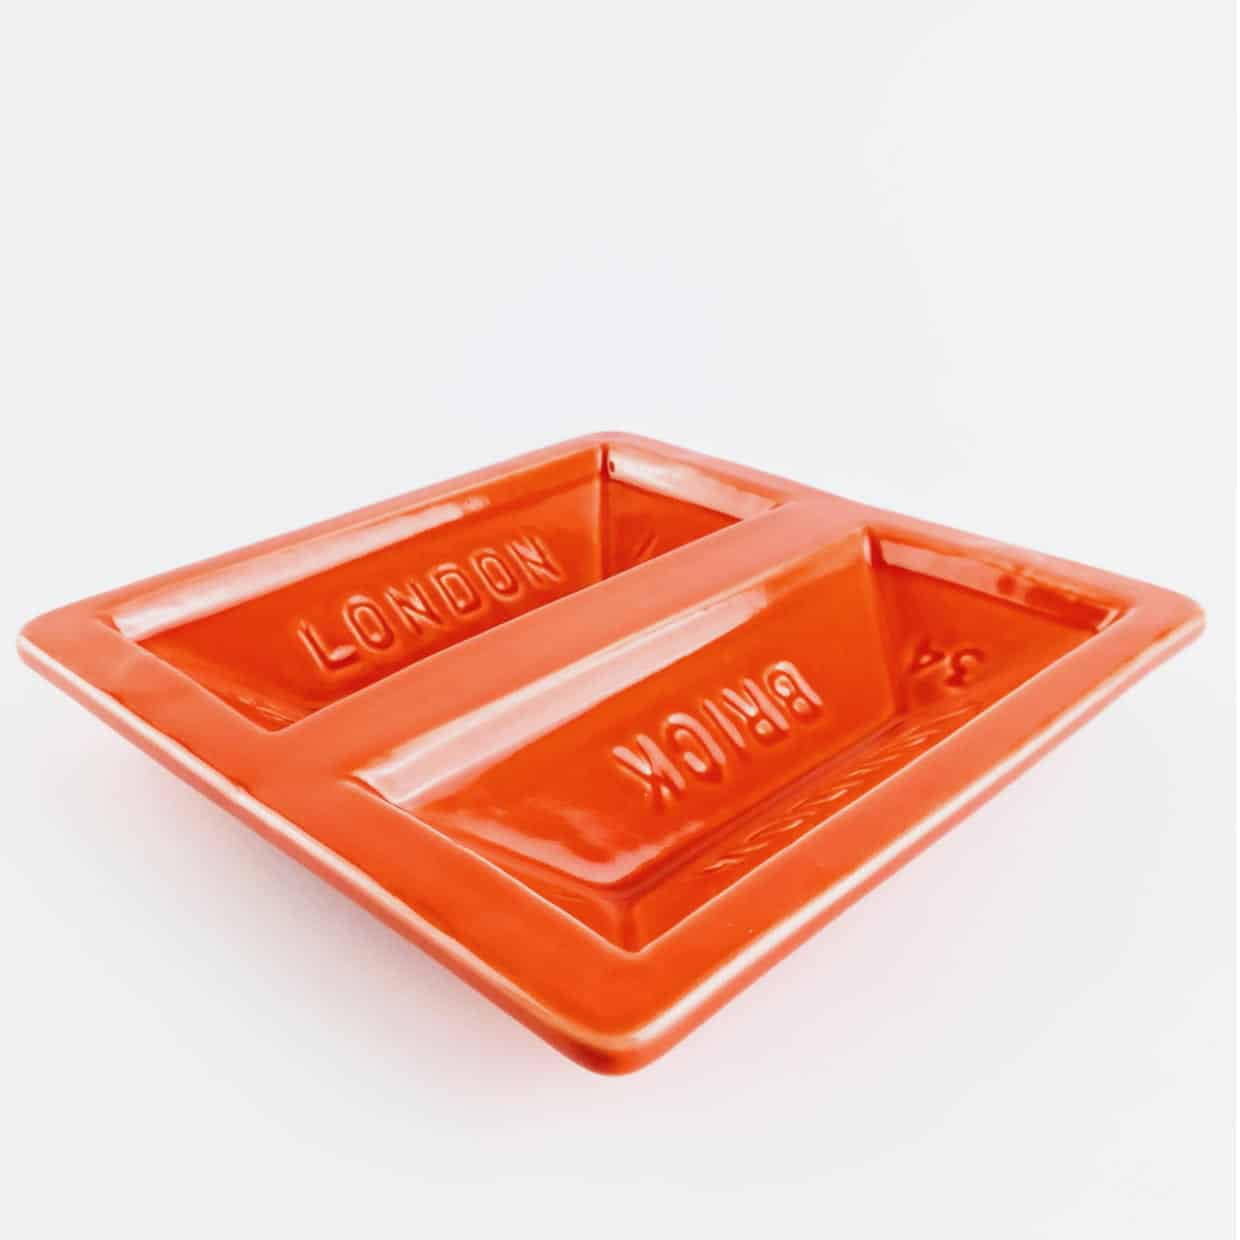 Stolen orange dish 1240x1240 - British made luxury handcrafted unique gifts for her